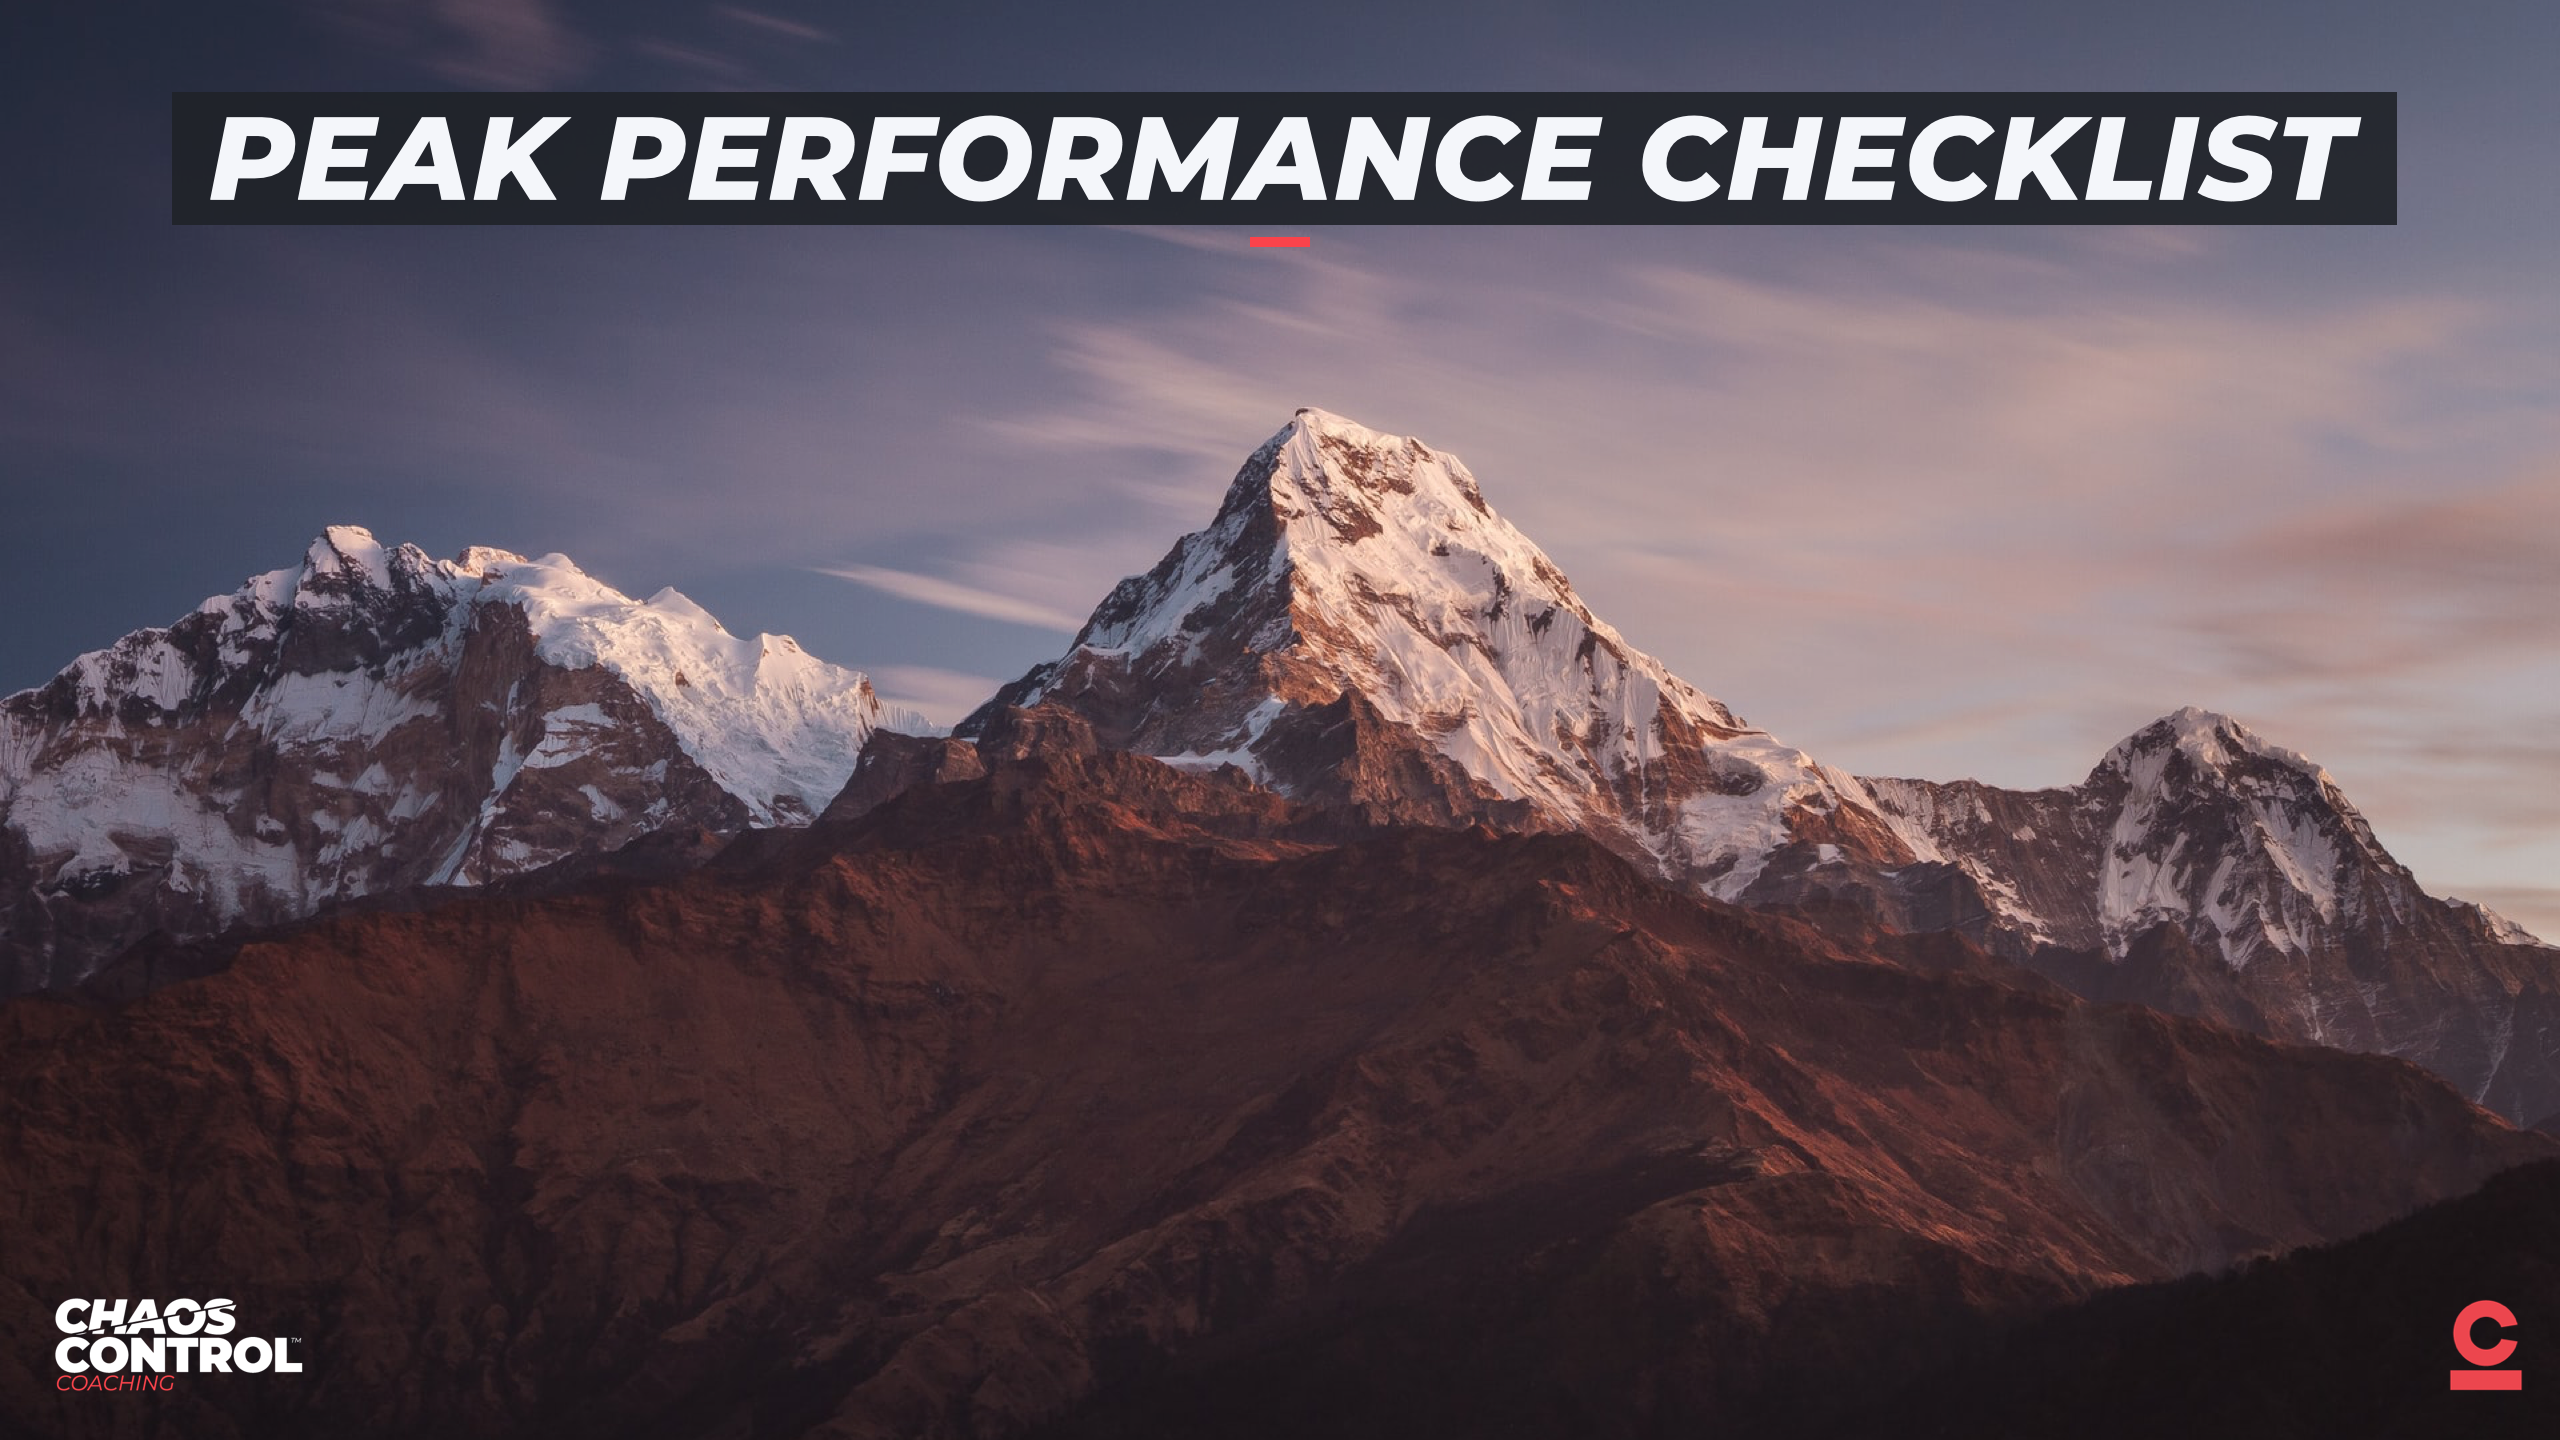 The Peak Performance Checklist